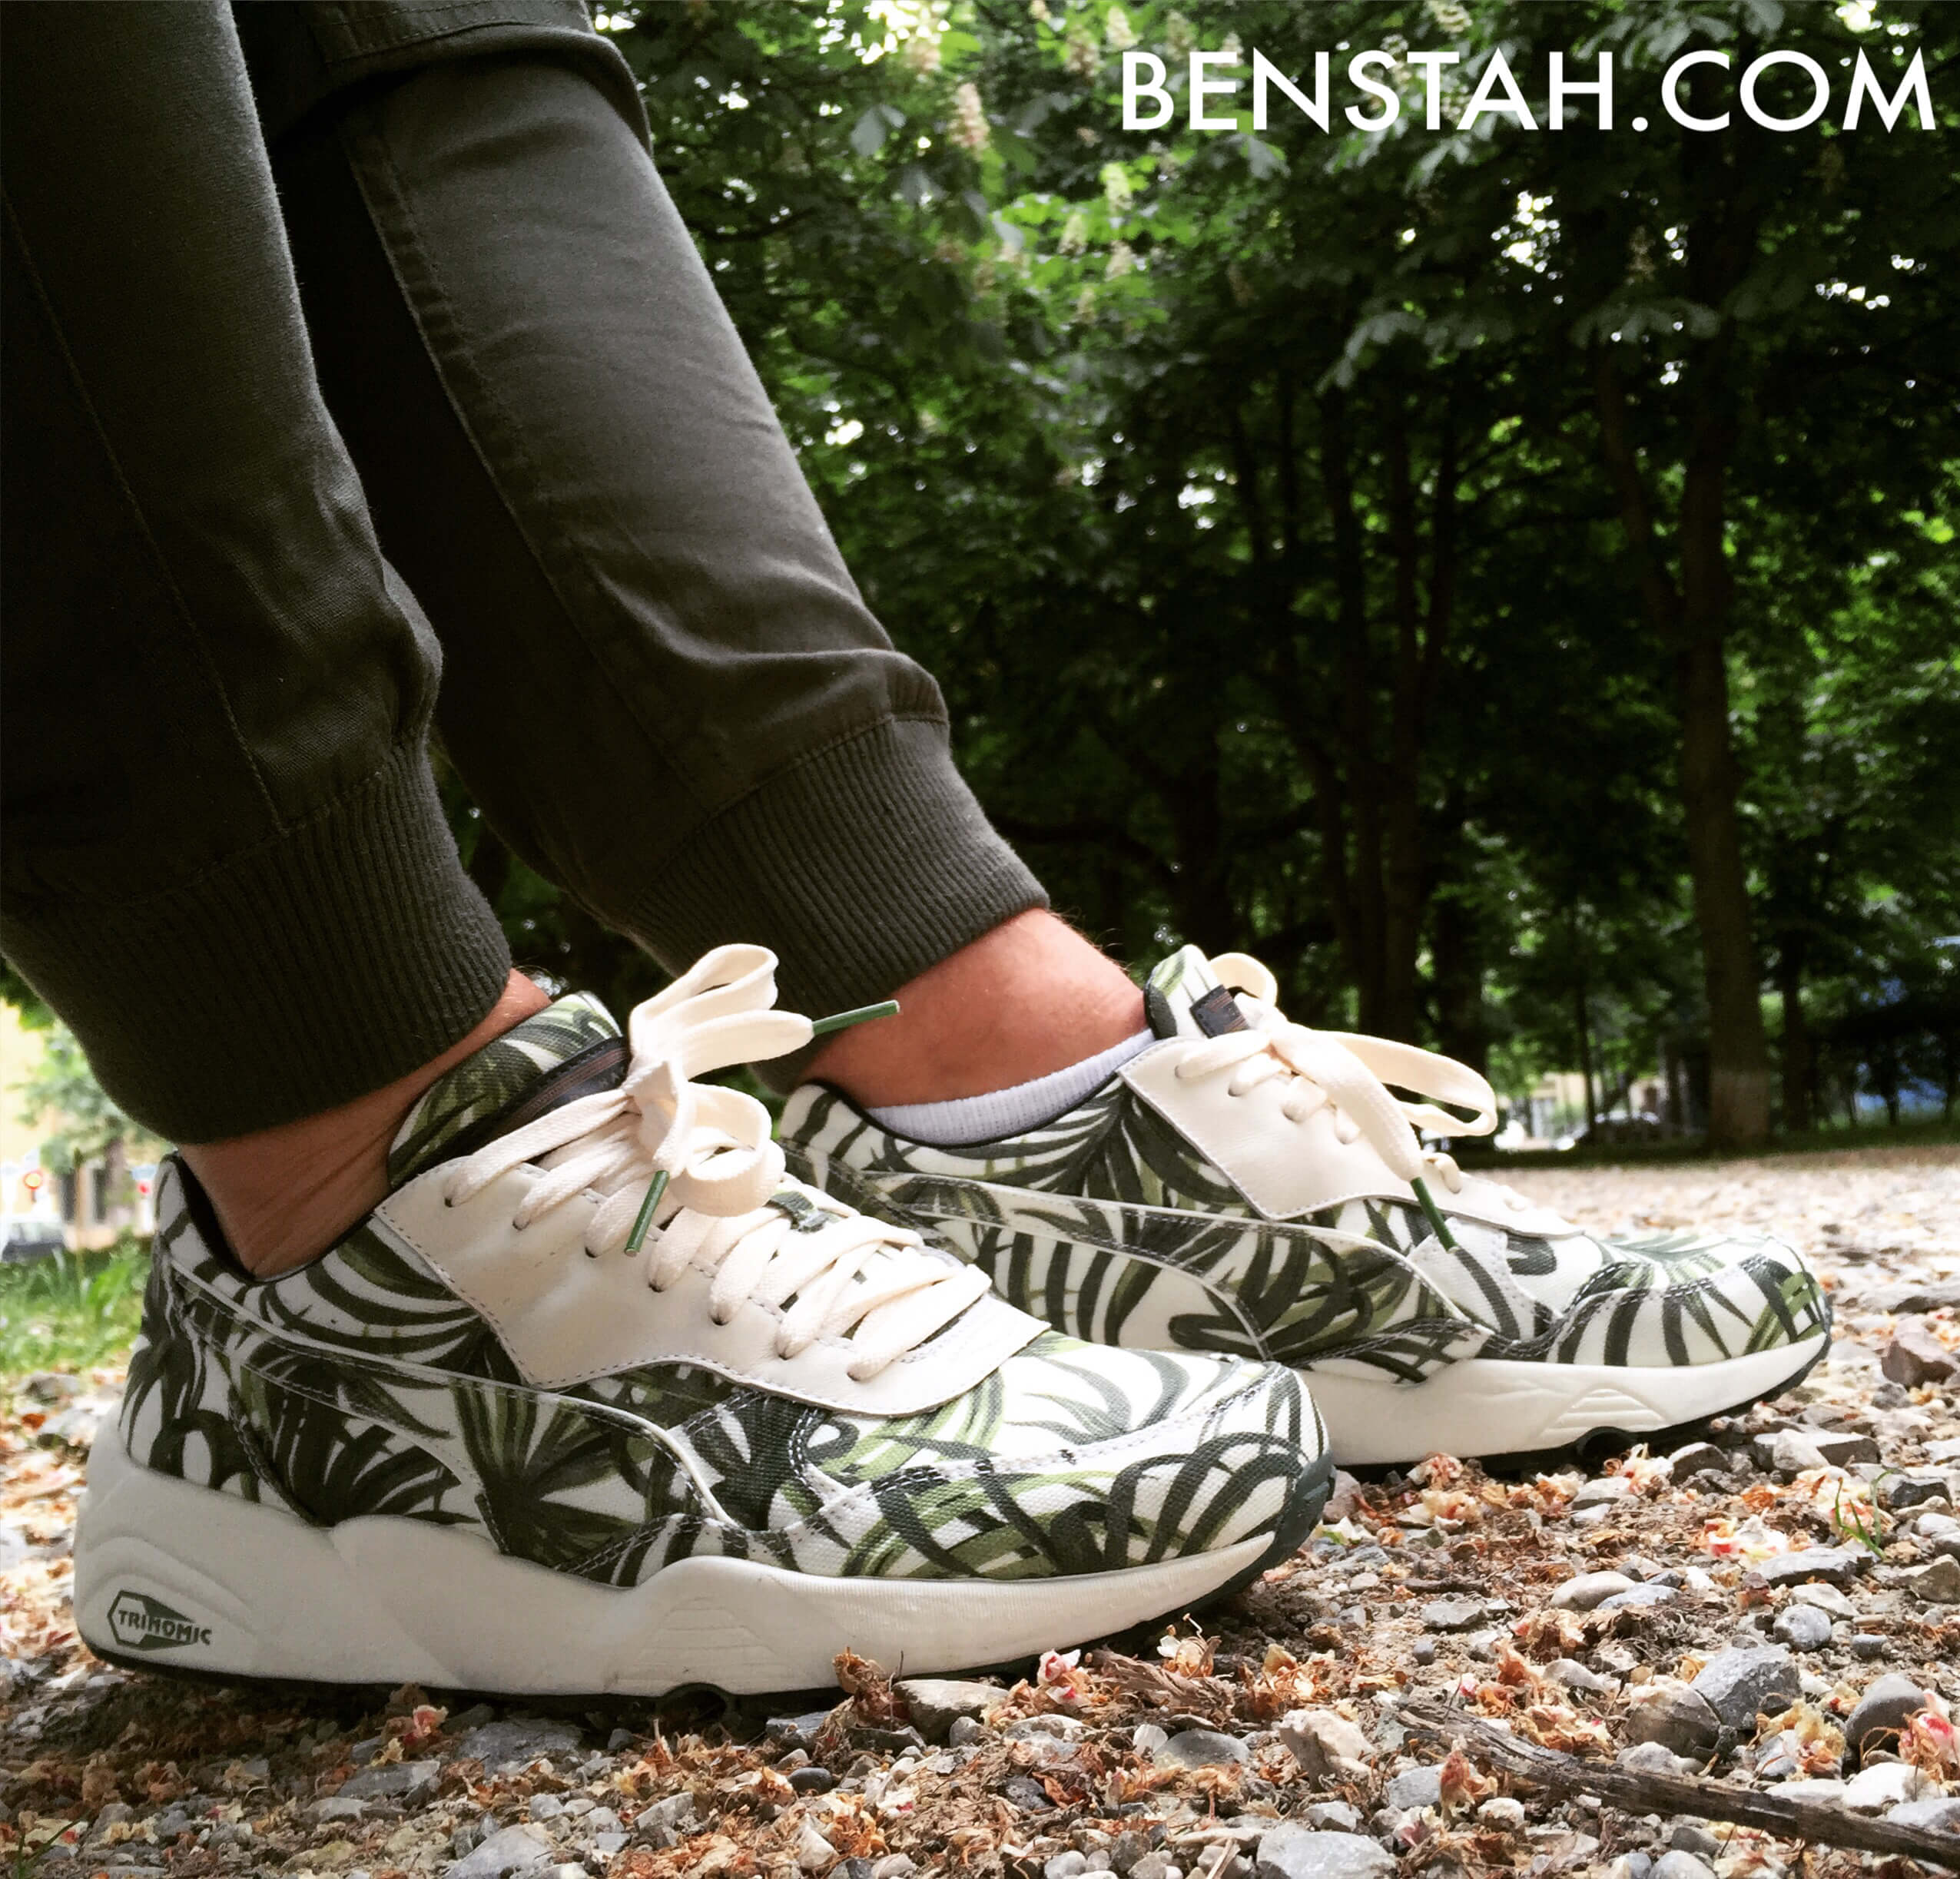 Puma-House-of-Hackney-x-R698-Palm-Side-View-Benstah-Onfeet